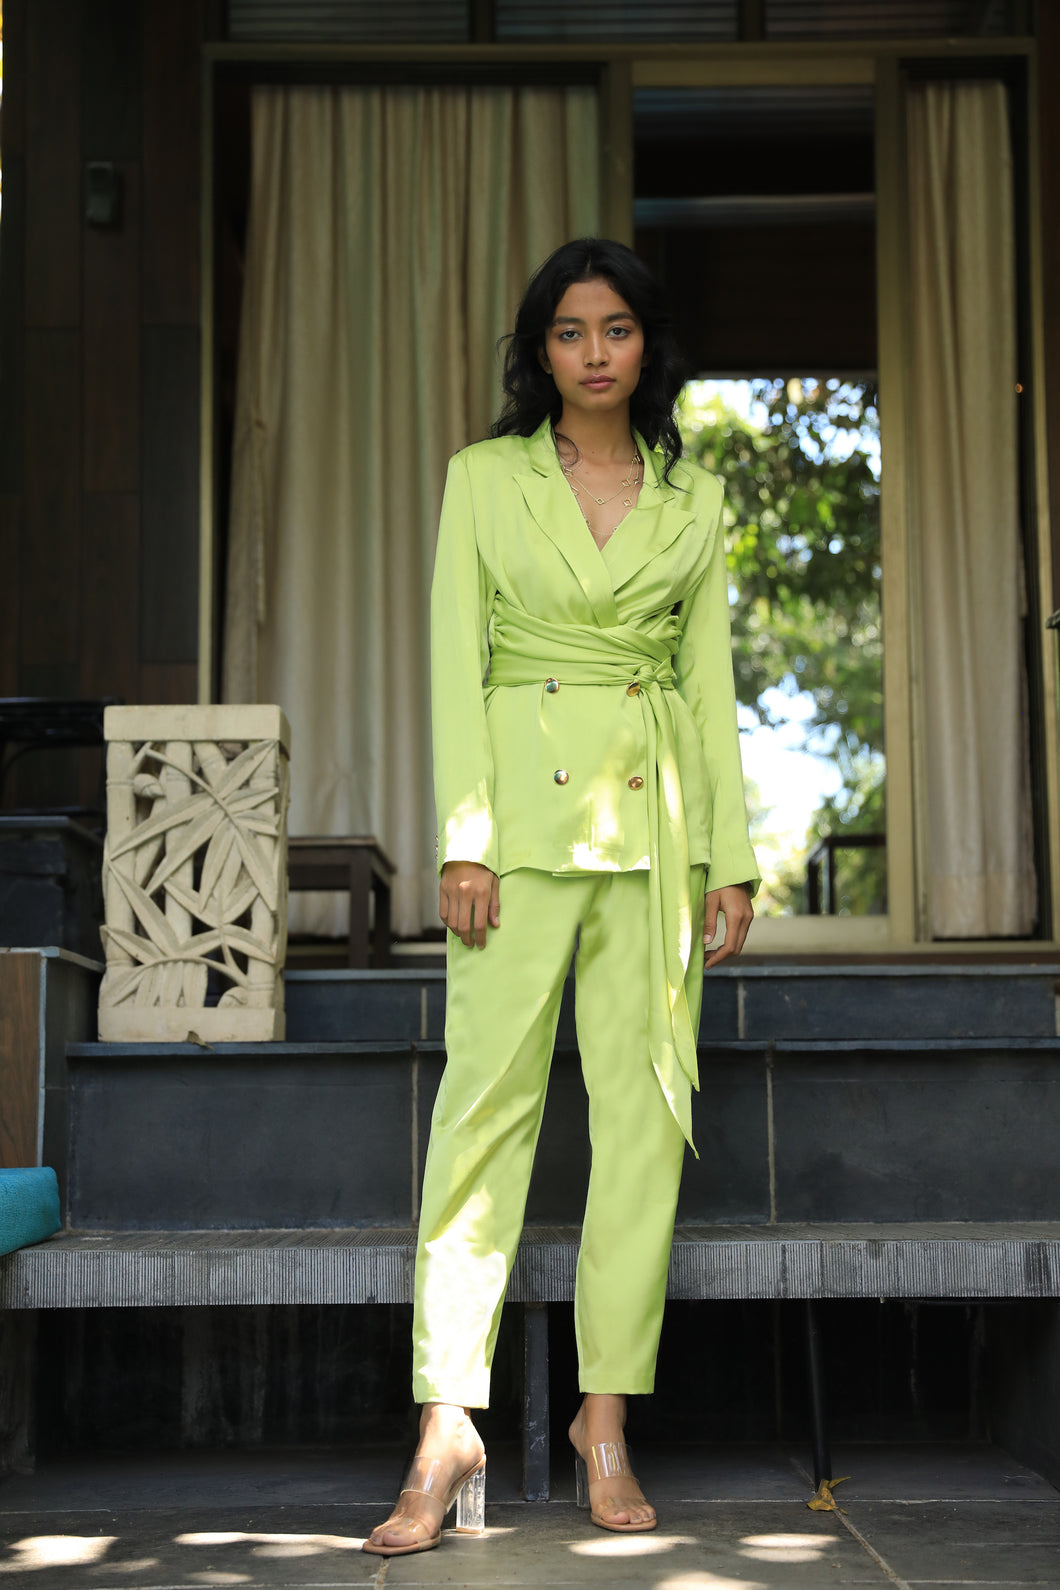 Citrus satin twill blazer and pant set